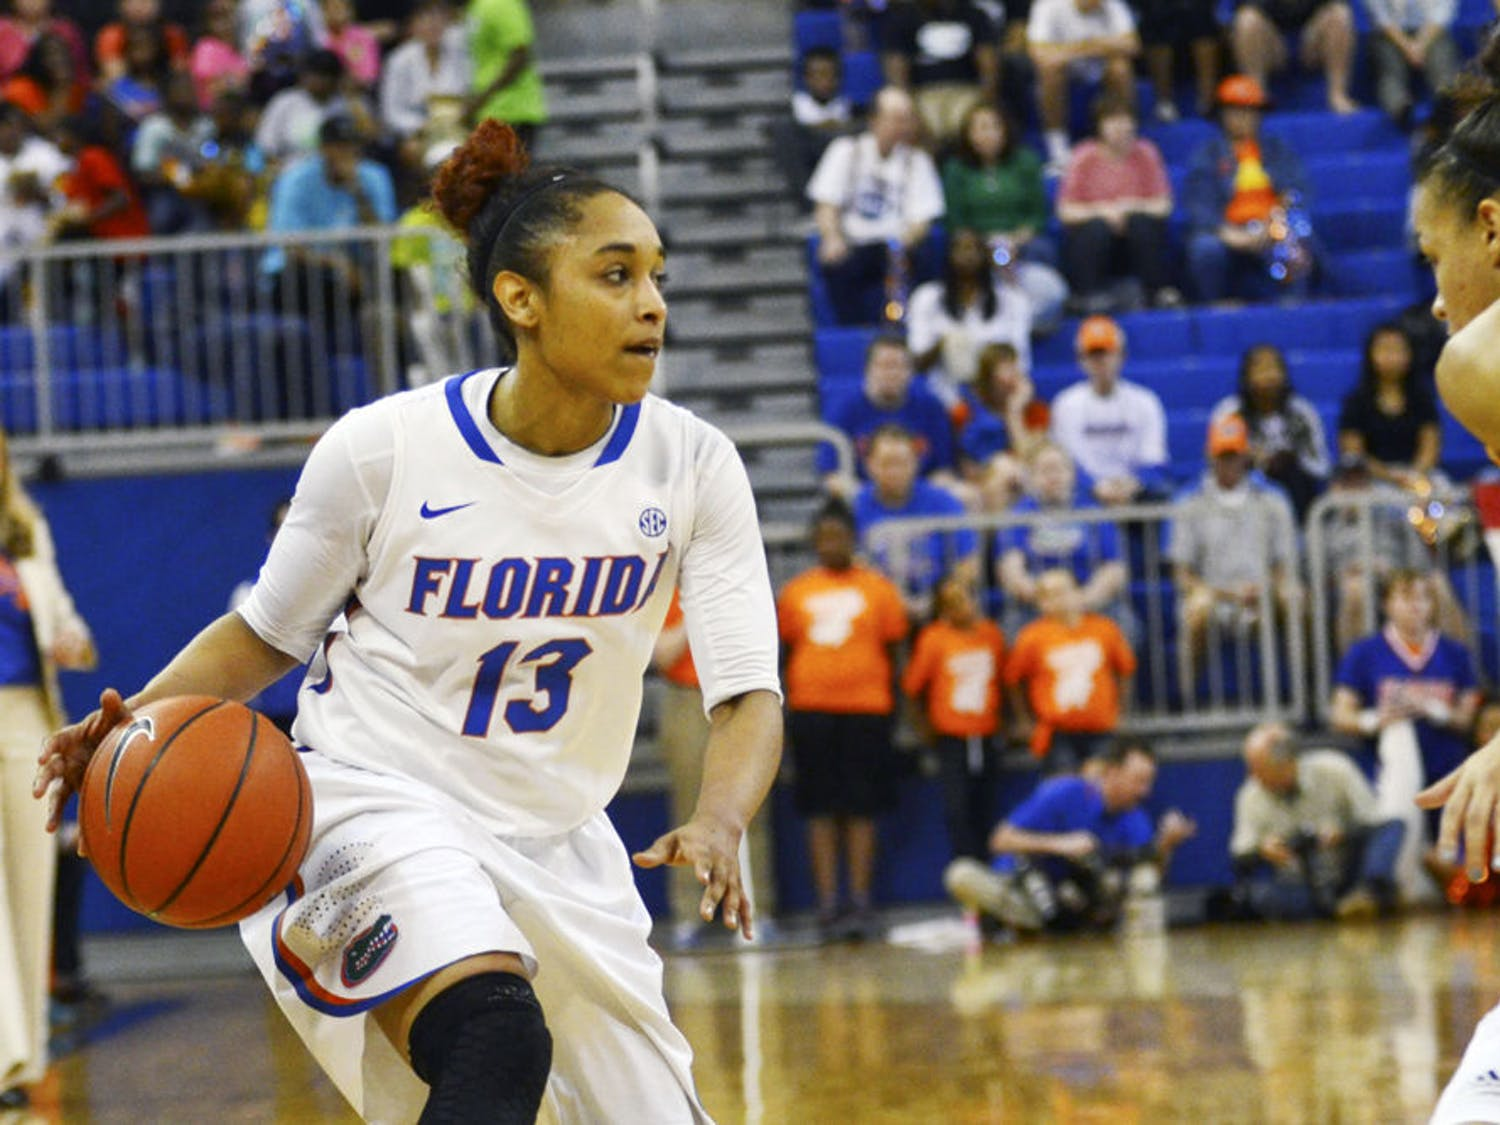 Cassie Peoples drives down the court during Florida's 64-56 loss to No. 6 Tennessee on Feb. 8, 2015 in the O'Connell Center.